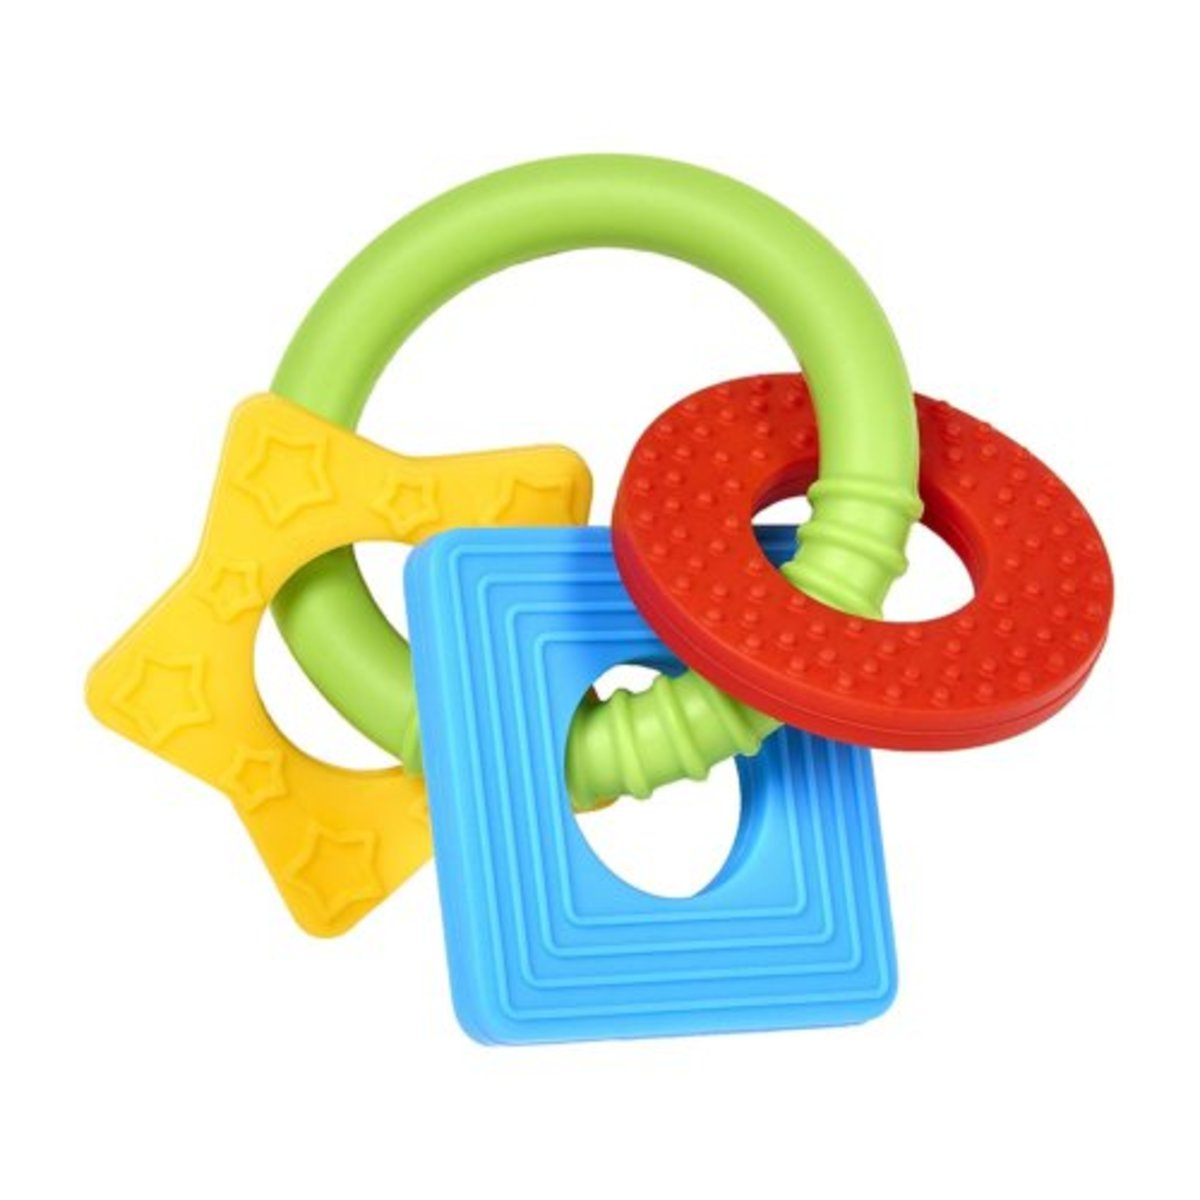 Learning Loop Infant Teether with Multi-Textured Design (parallel goods)